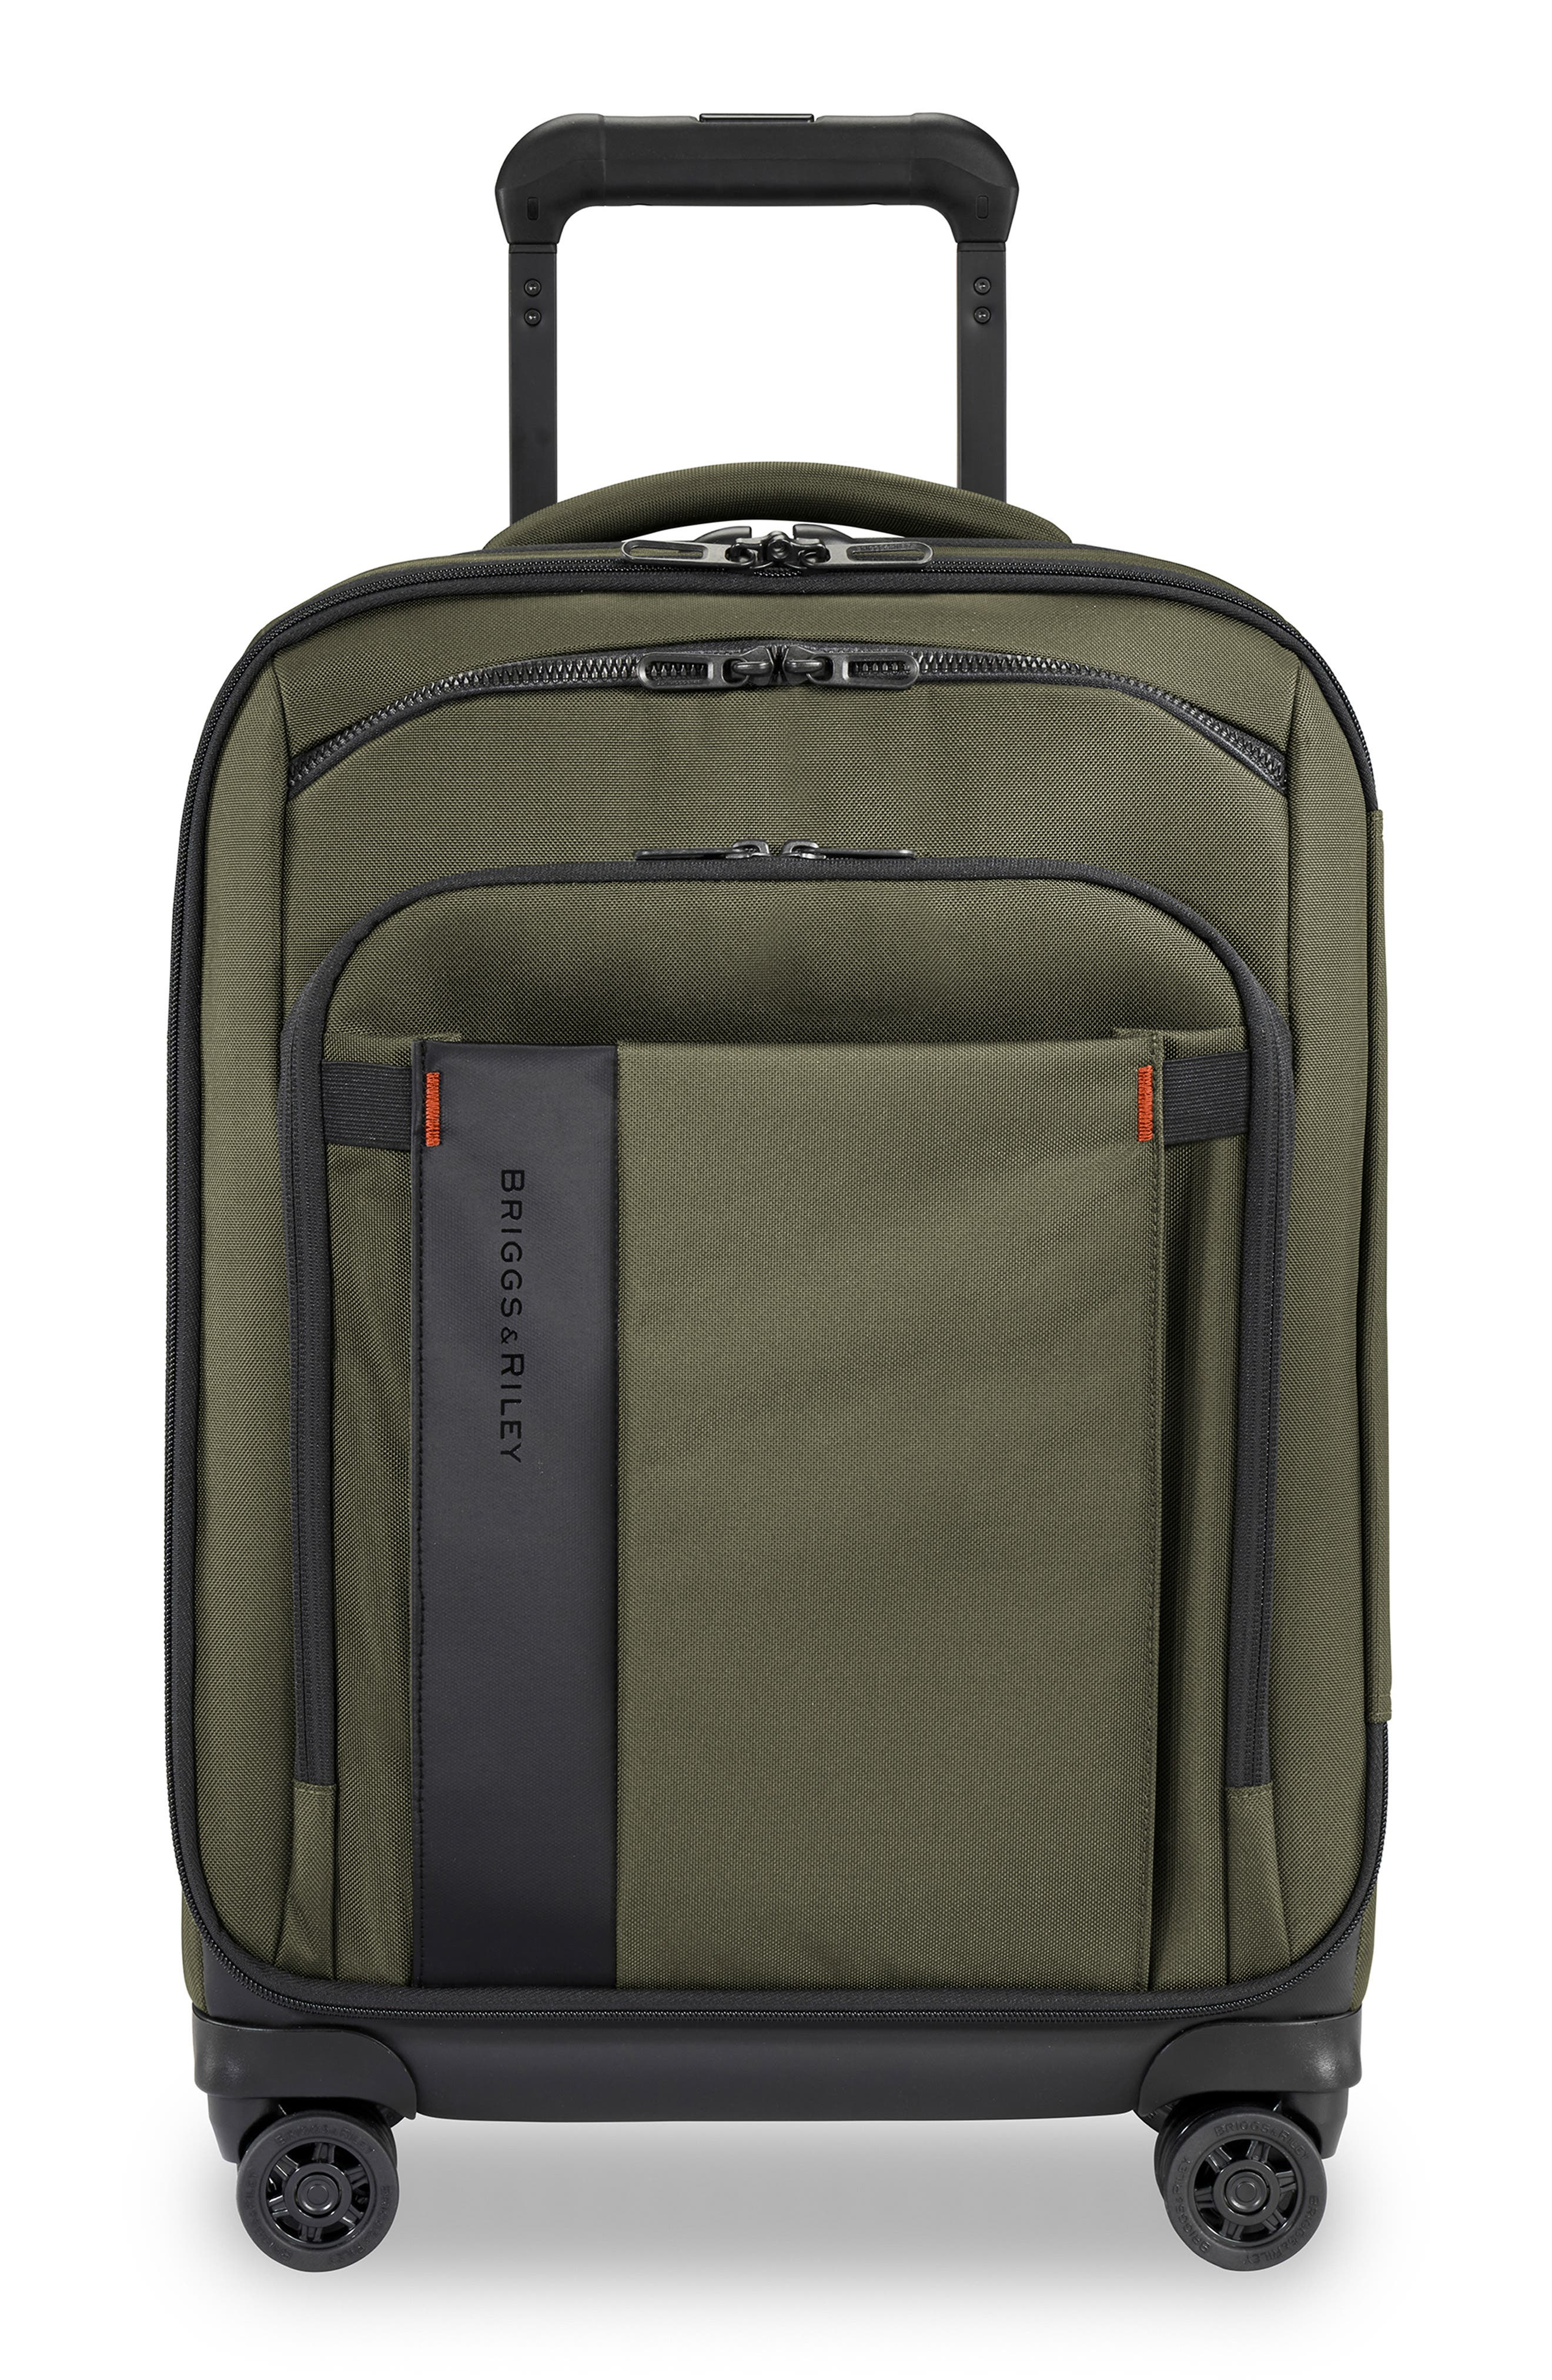 Zdx 21-Inch Expandable Spinner Suitcase